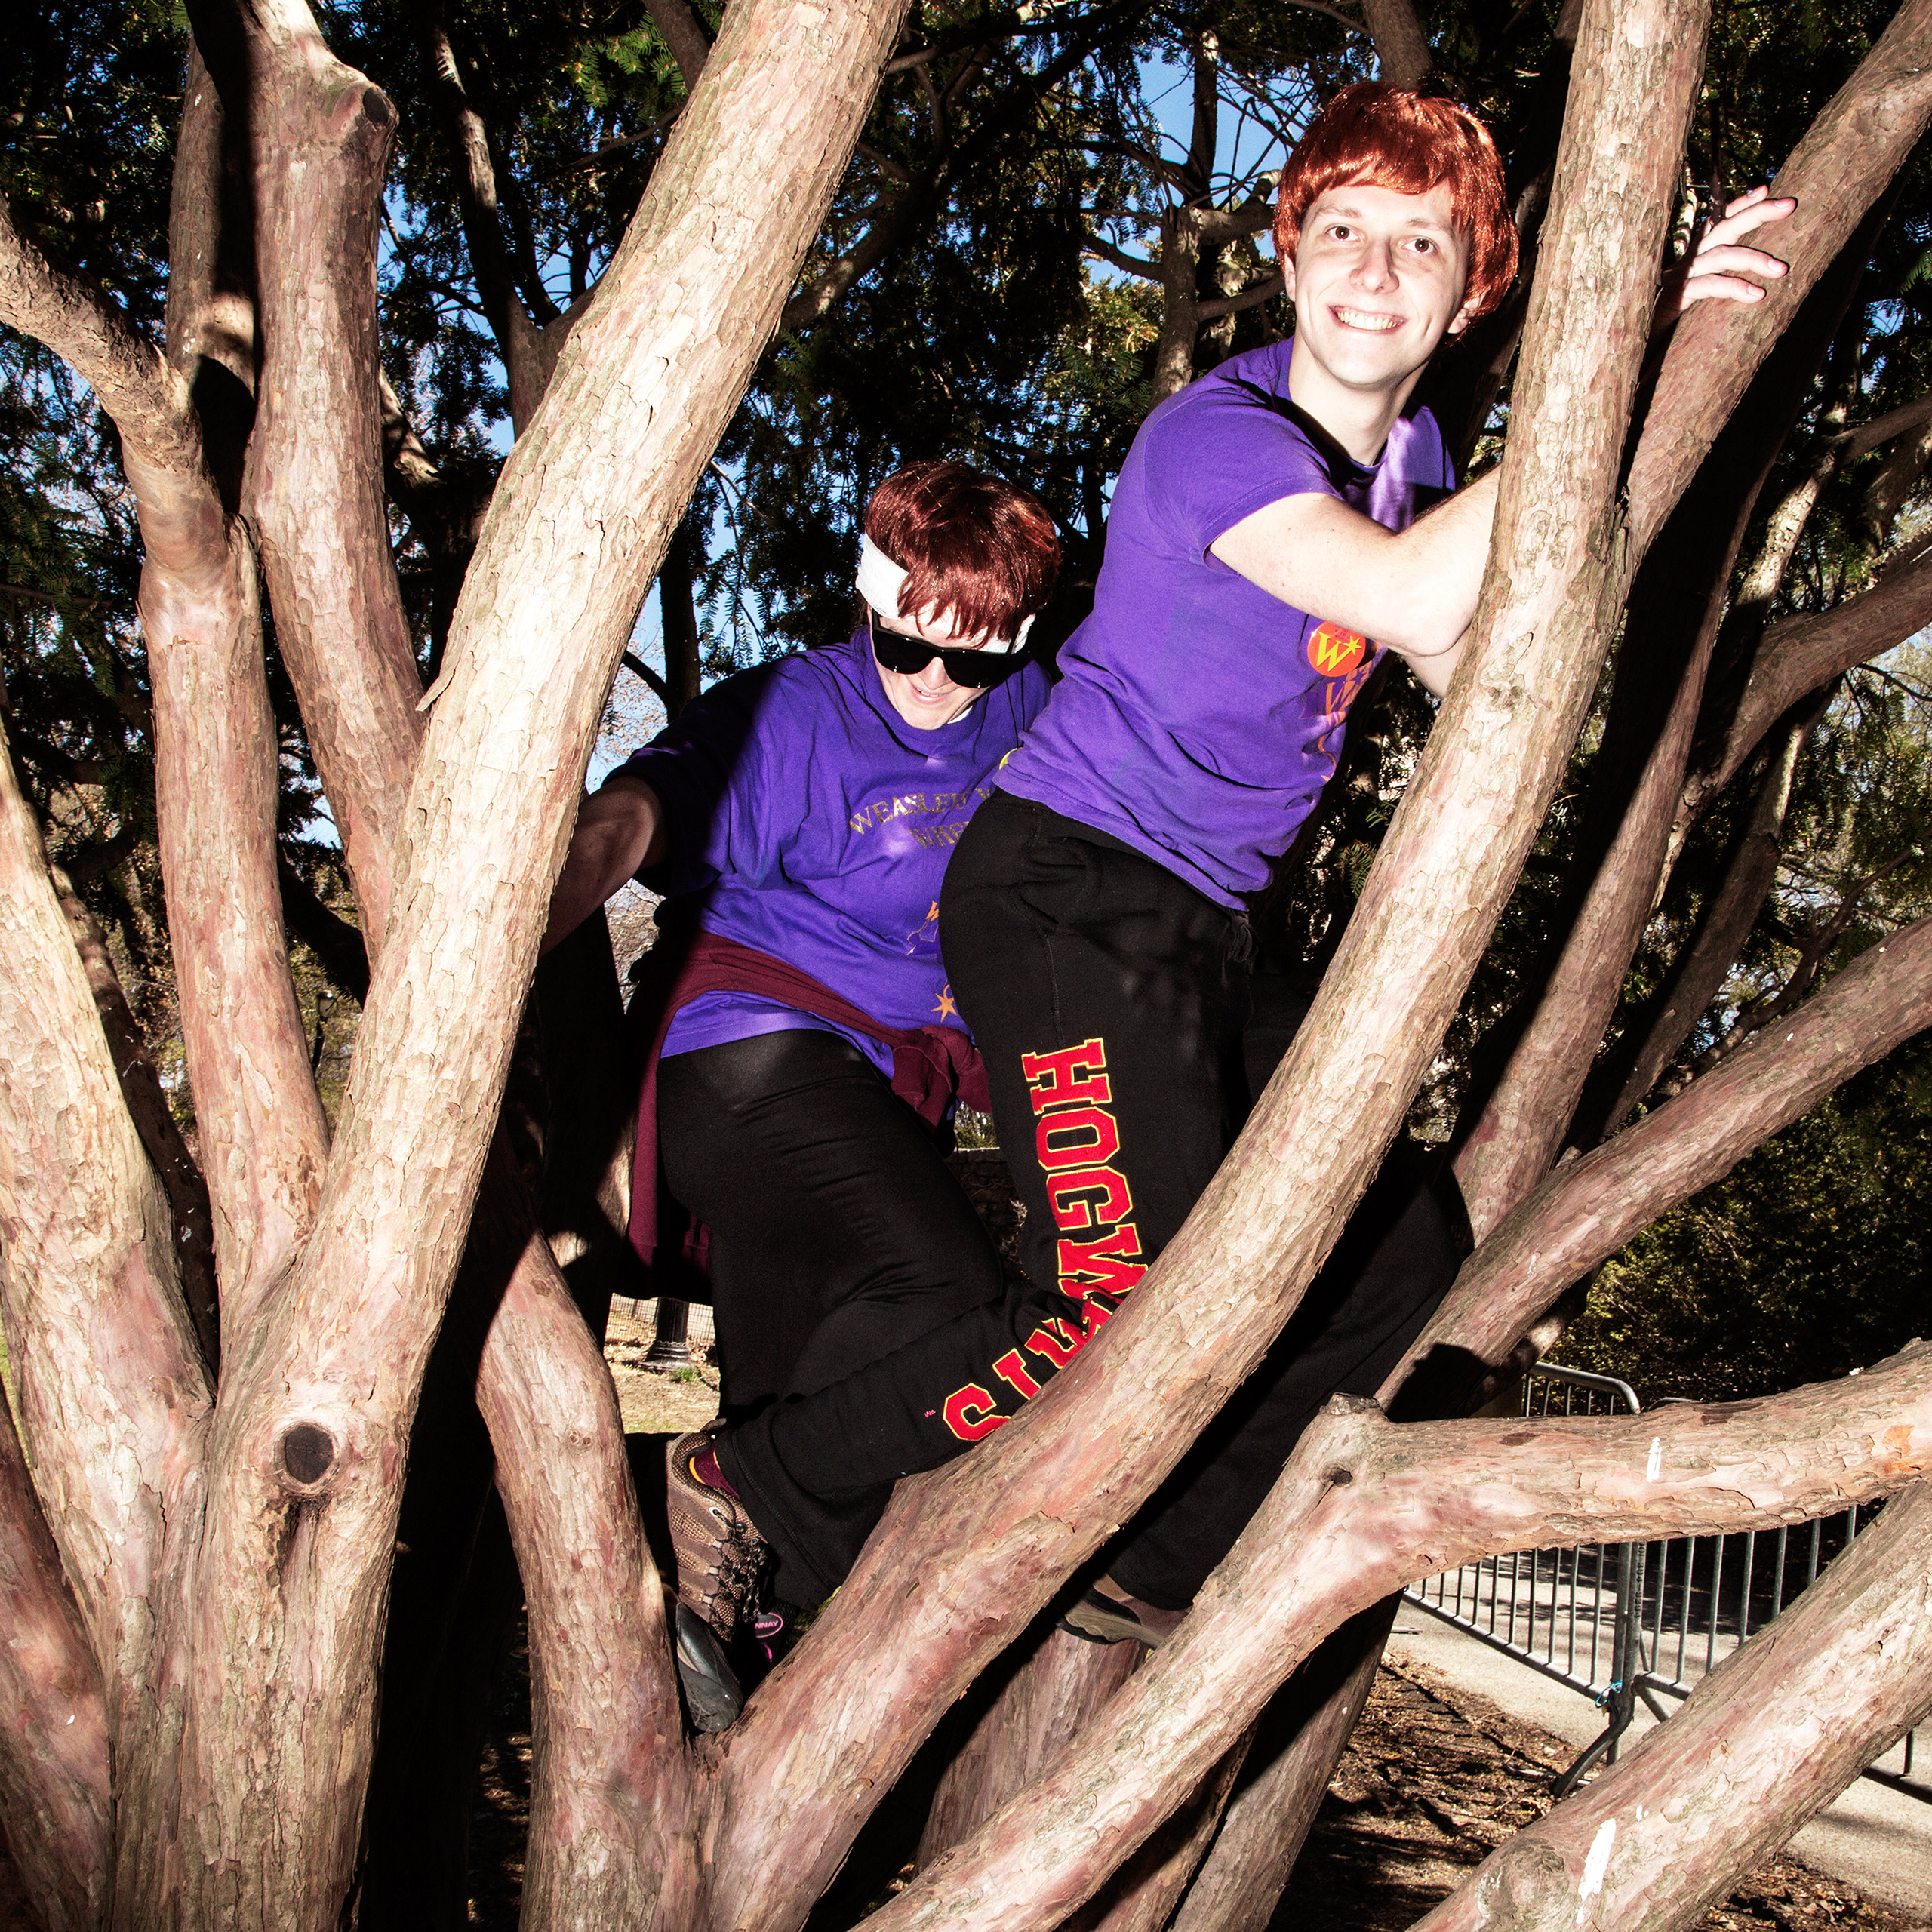 Members cosplay as the Weasley's and climb a tree at a gathering at Fort Tyron Park in Inwood.